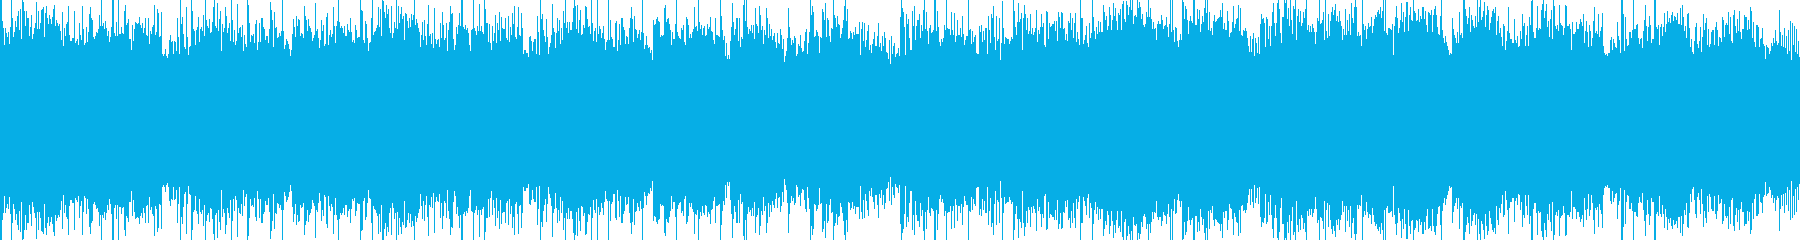 Ruth horror BGM's reproduced waveform